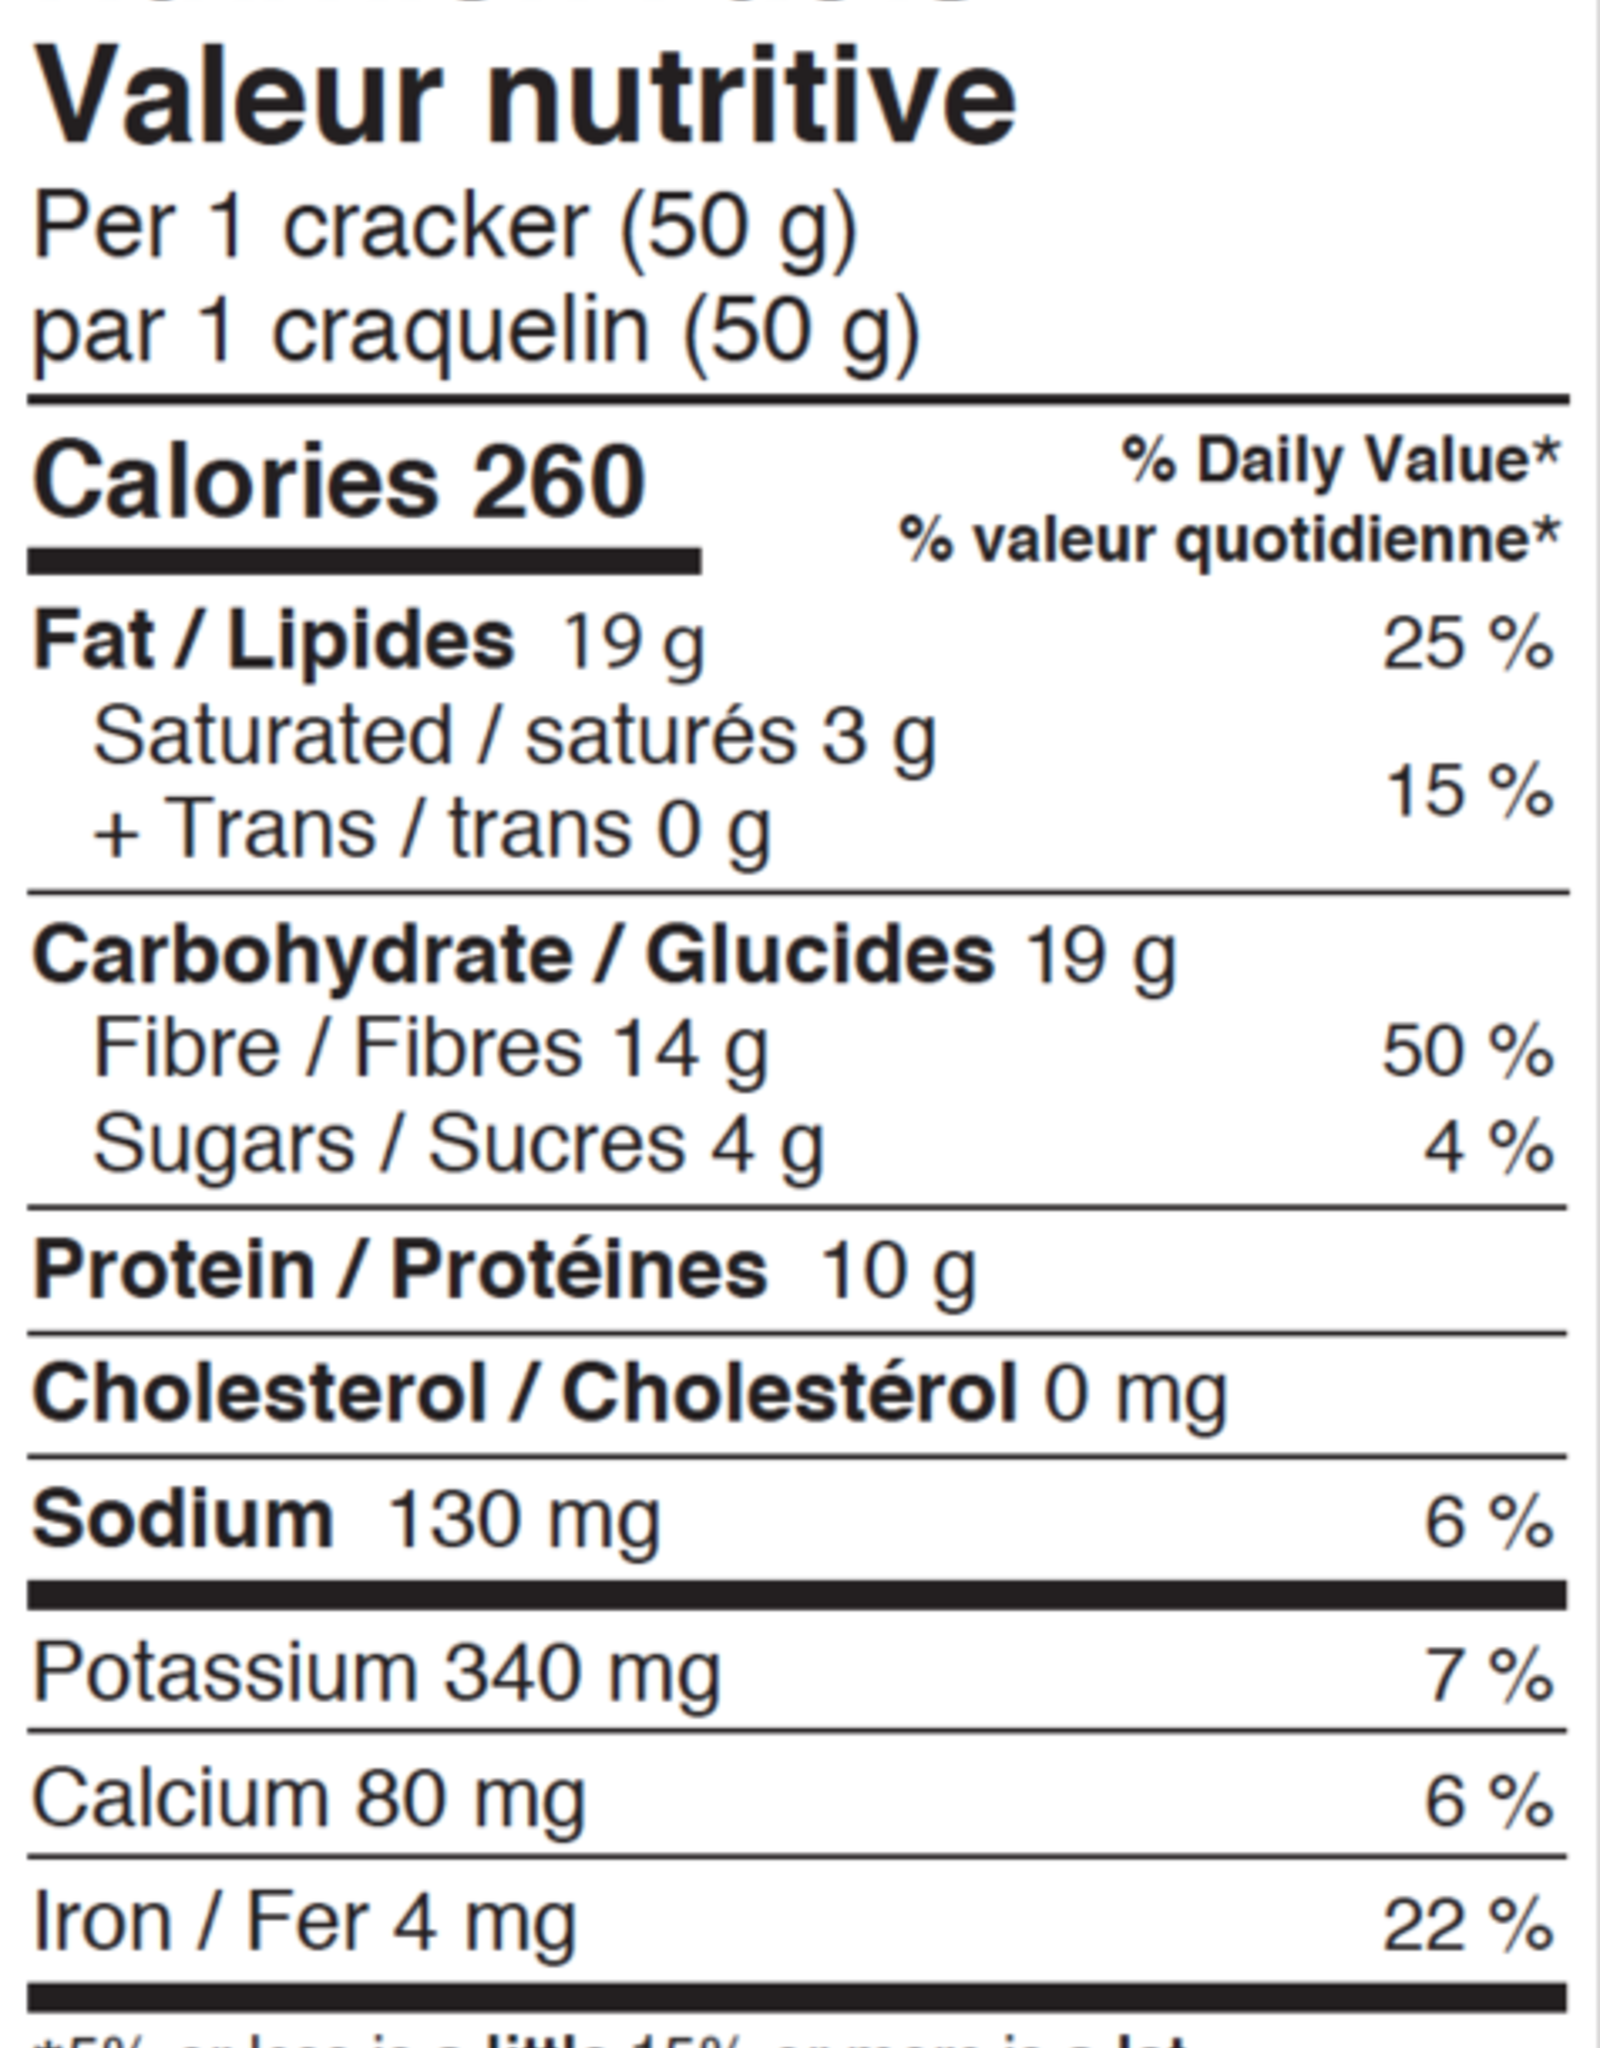 KZ Clean Eating Kz Clean Eating - Craquelins, Pomme & Cannelle (200g)